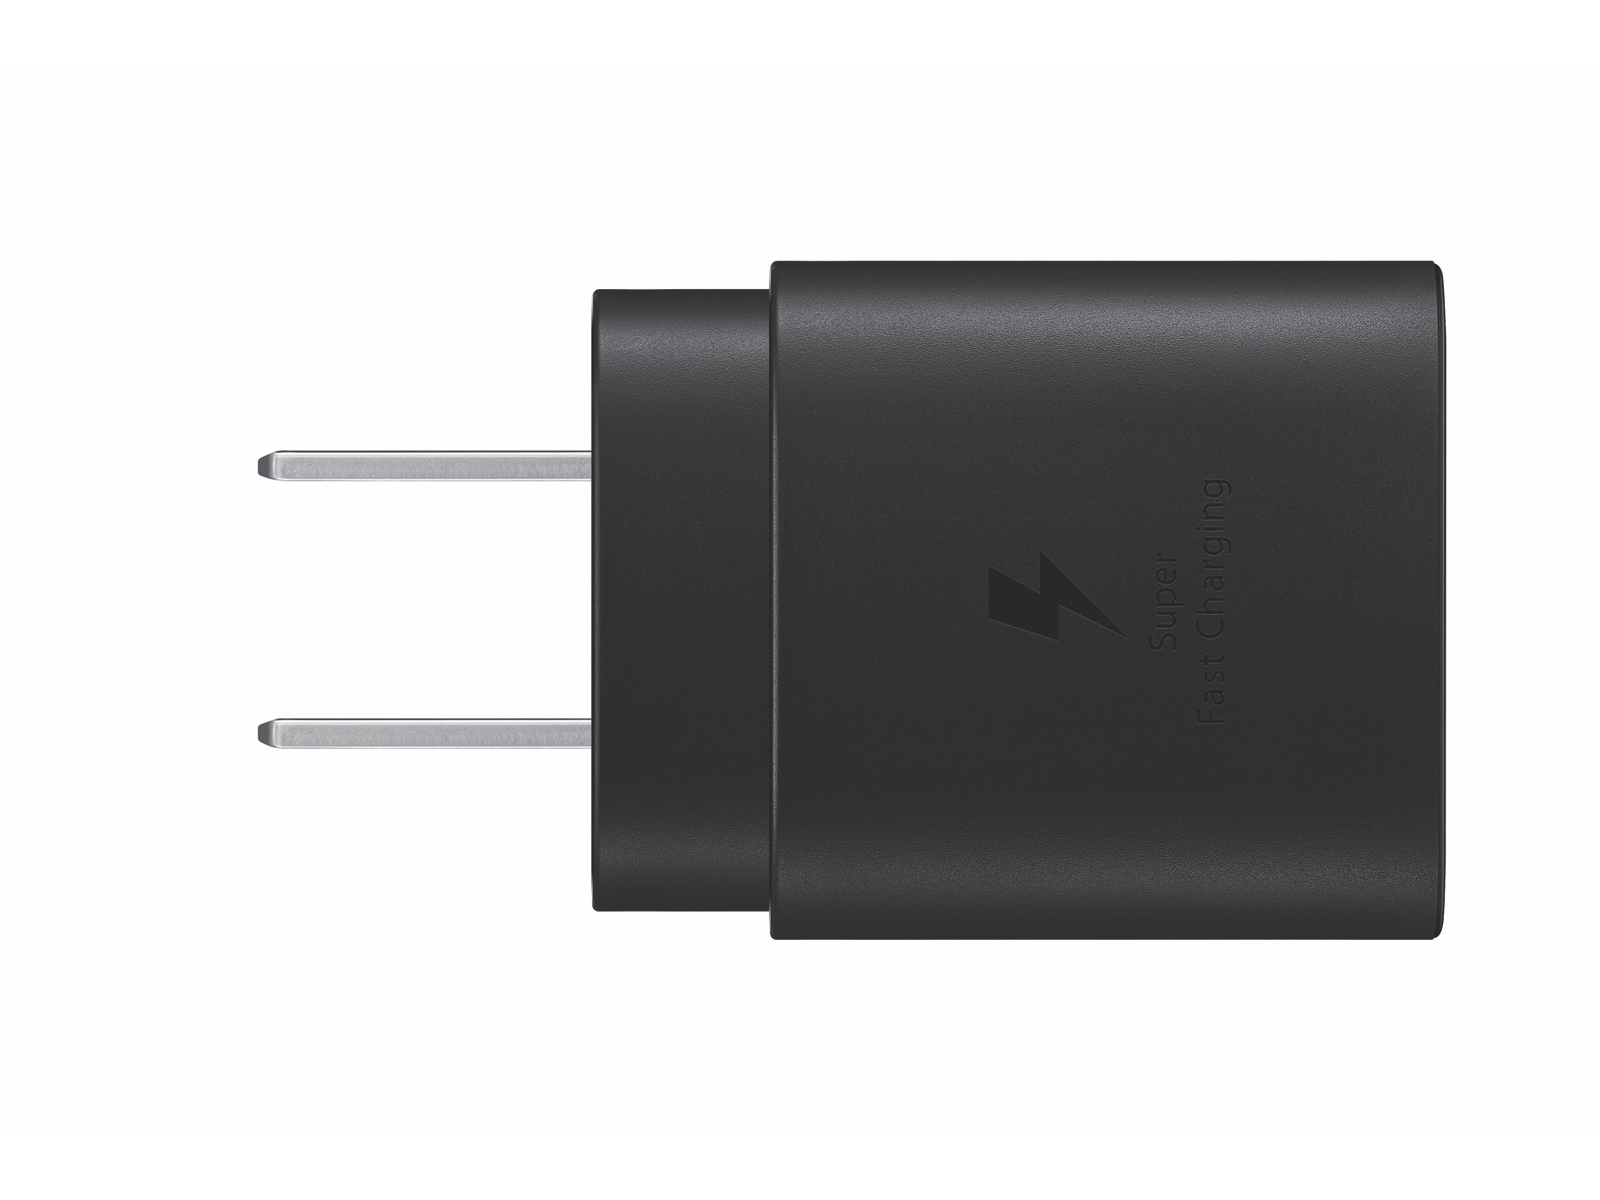 25W USB-C Fast Charging Wall Charger, Black